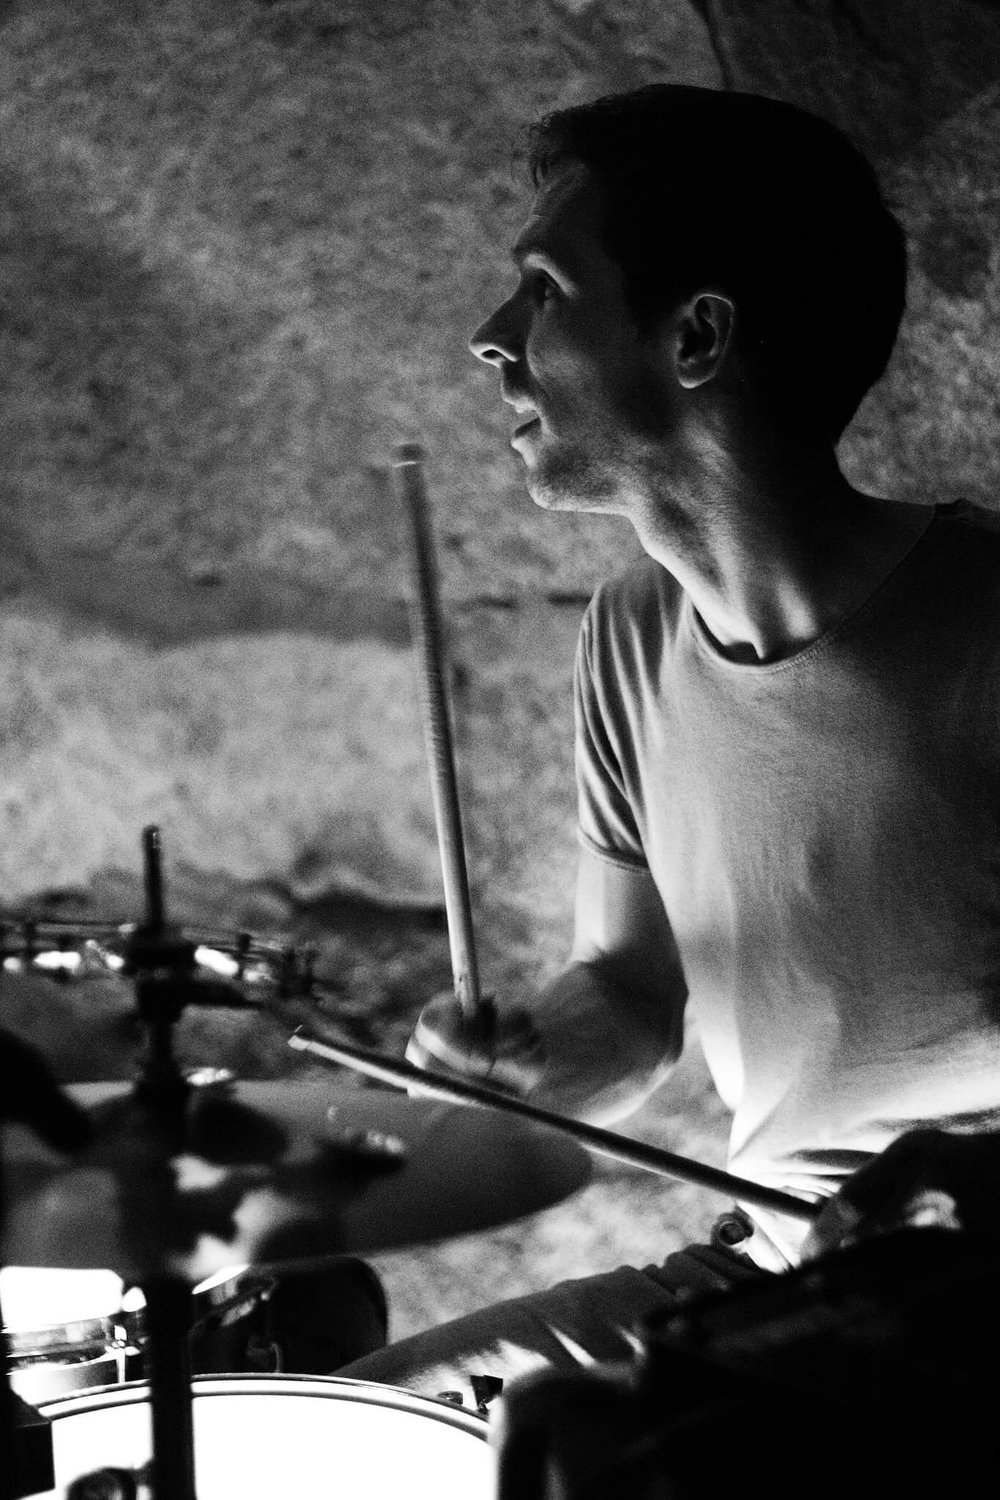 Dan drumming at guilt.jpg